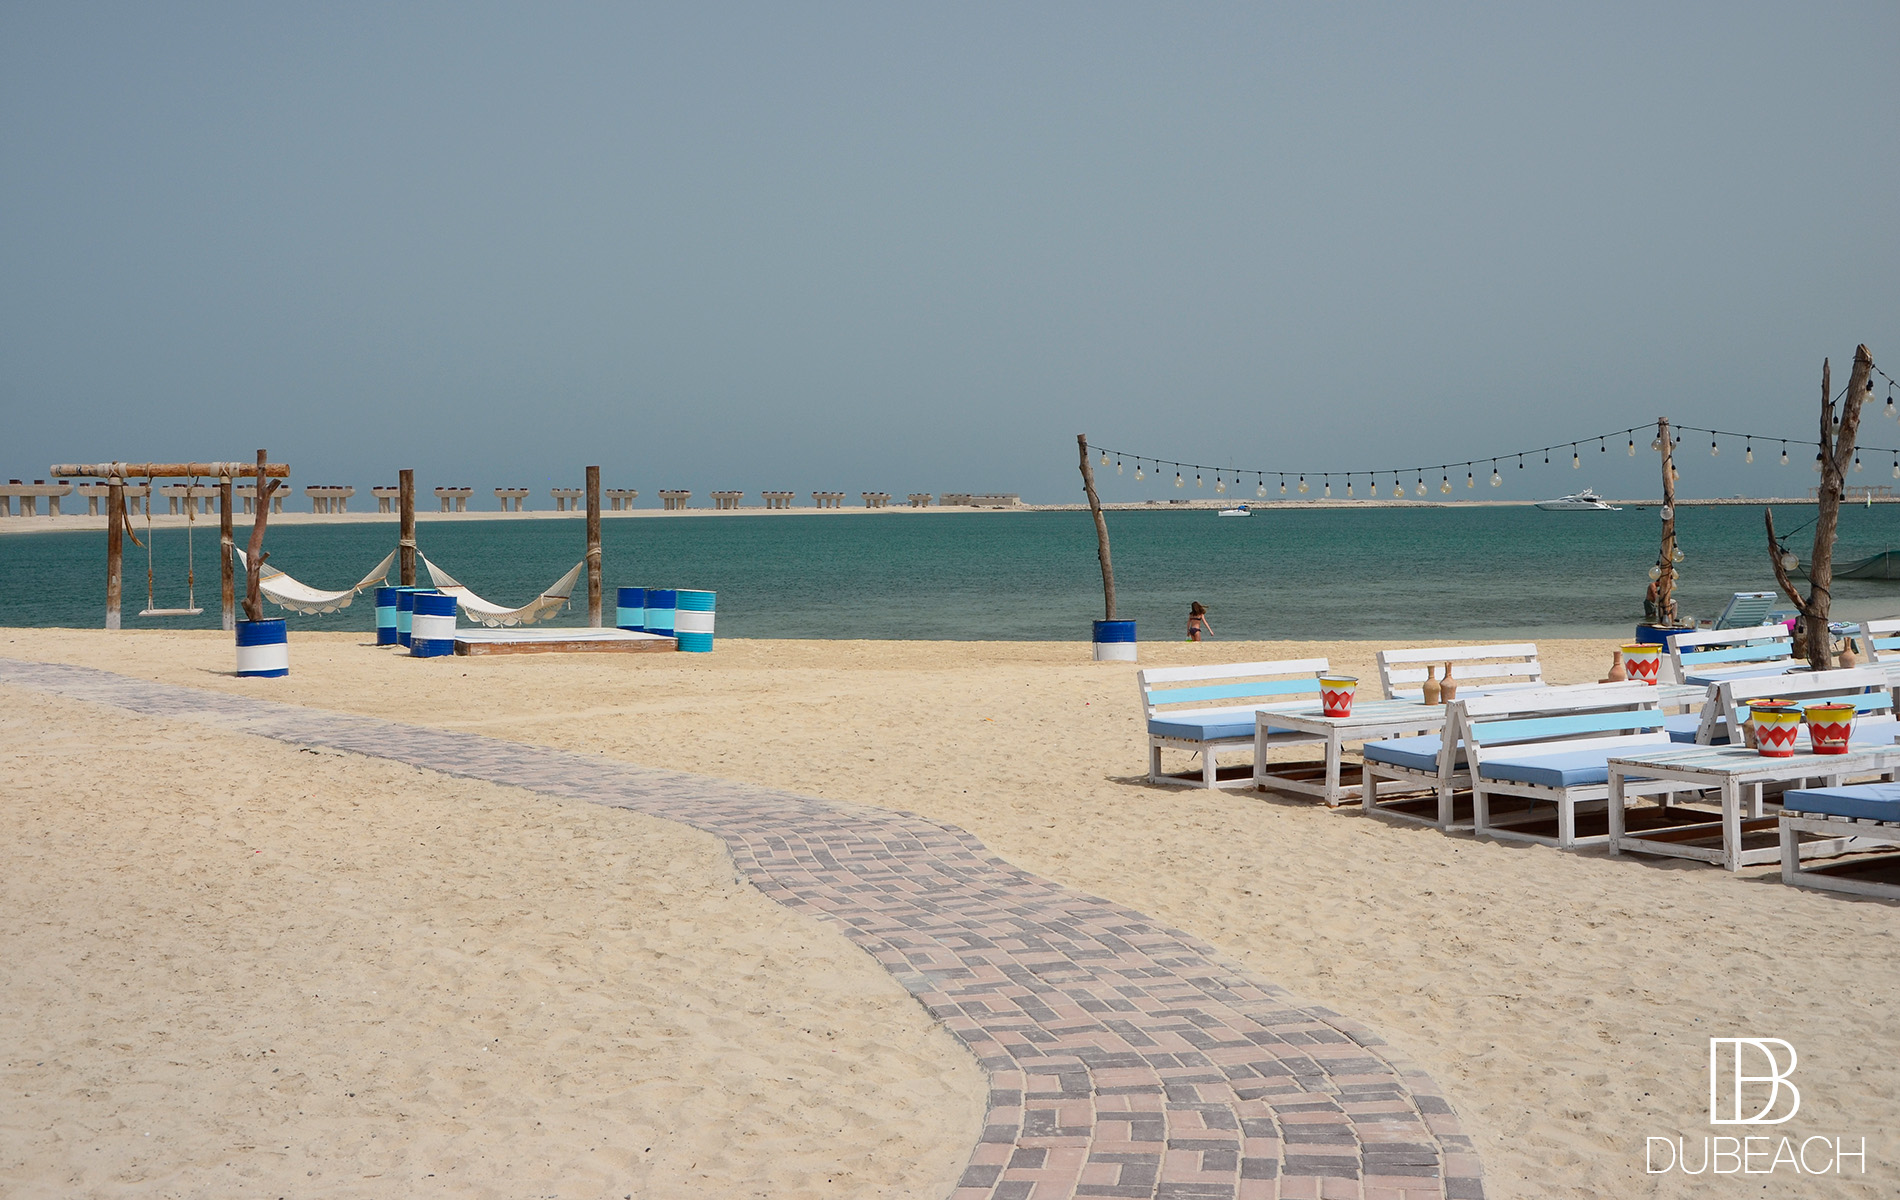 banan_beach club jebel ali dubai